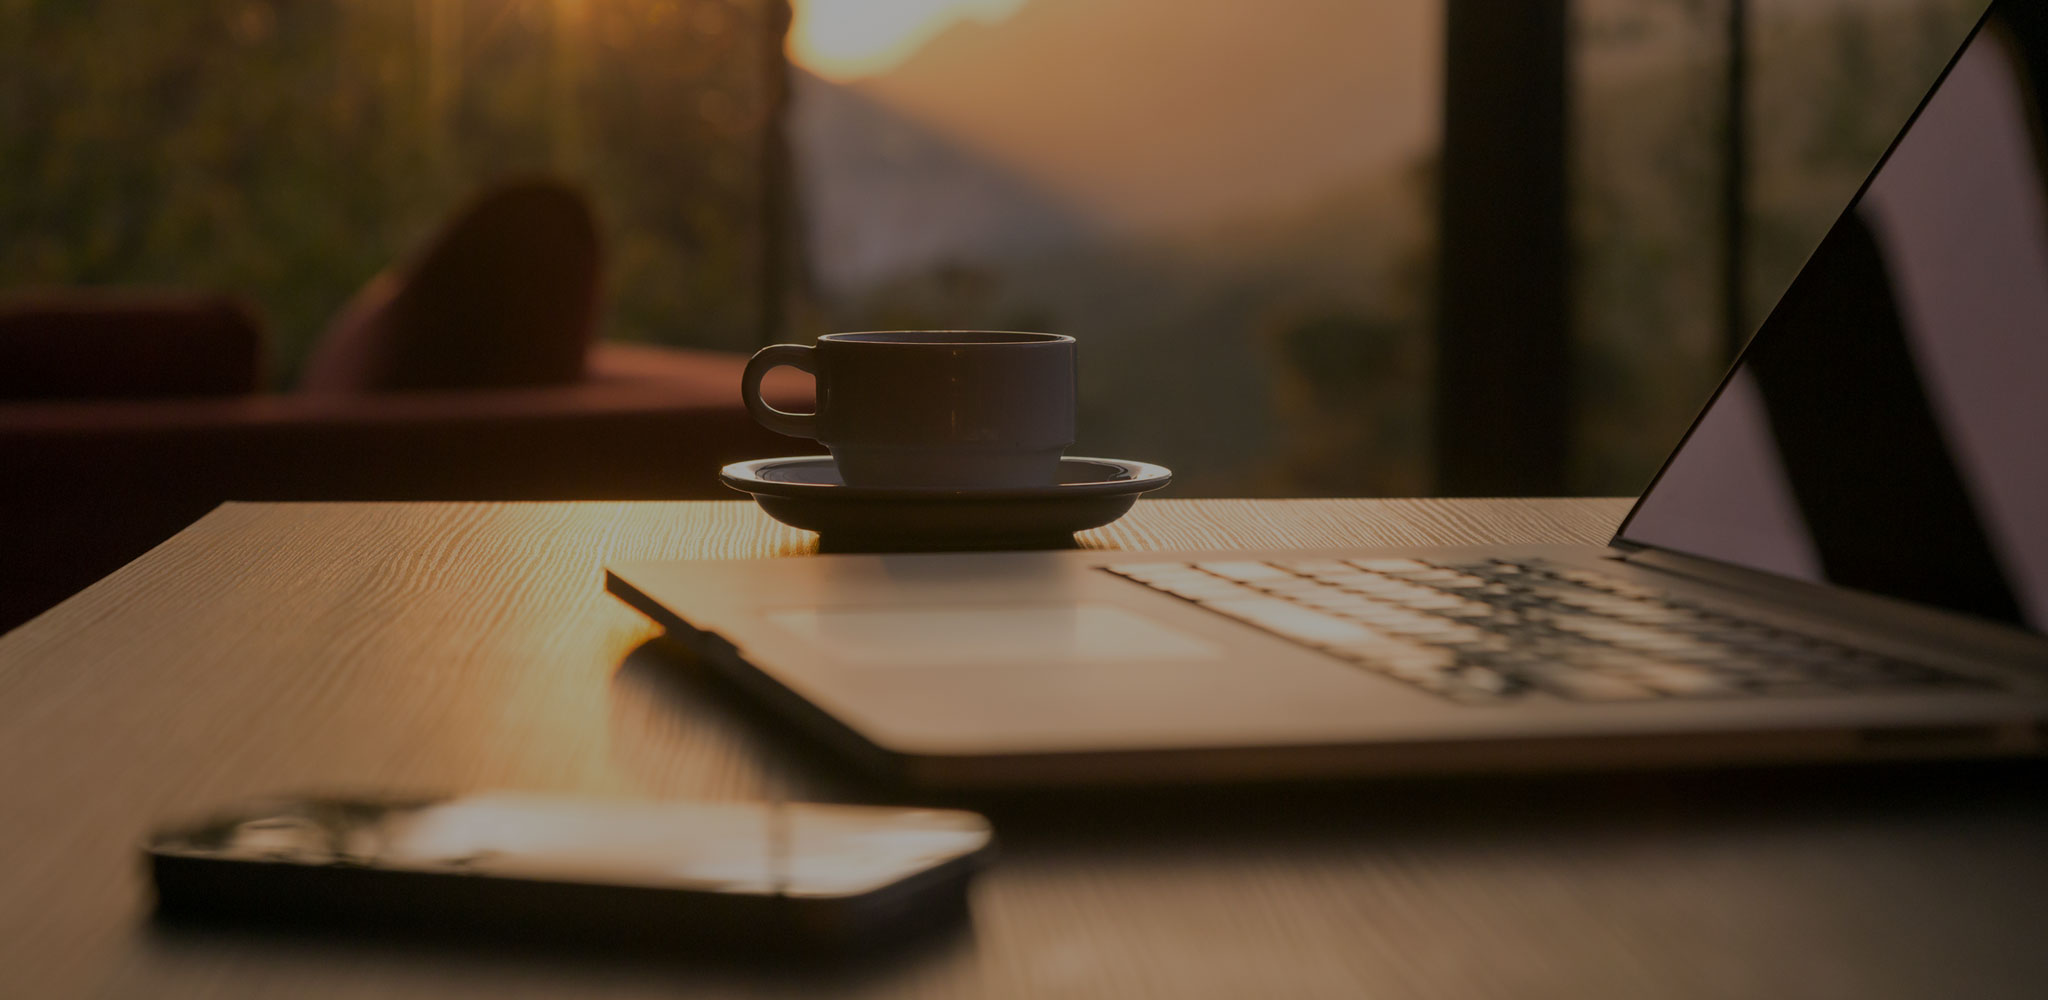 Coffee and Laptop by Window